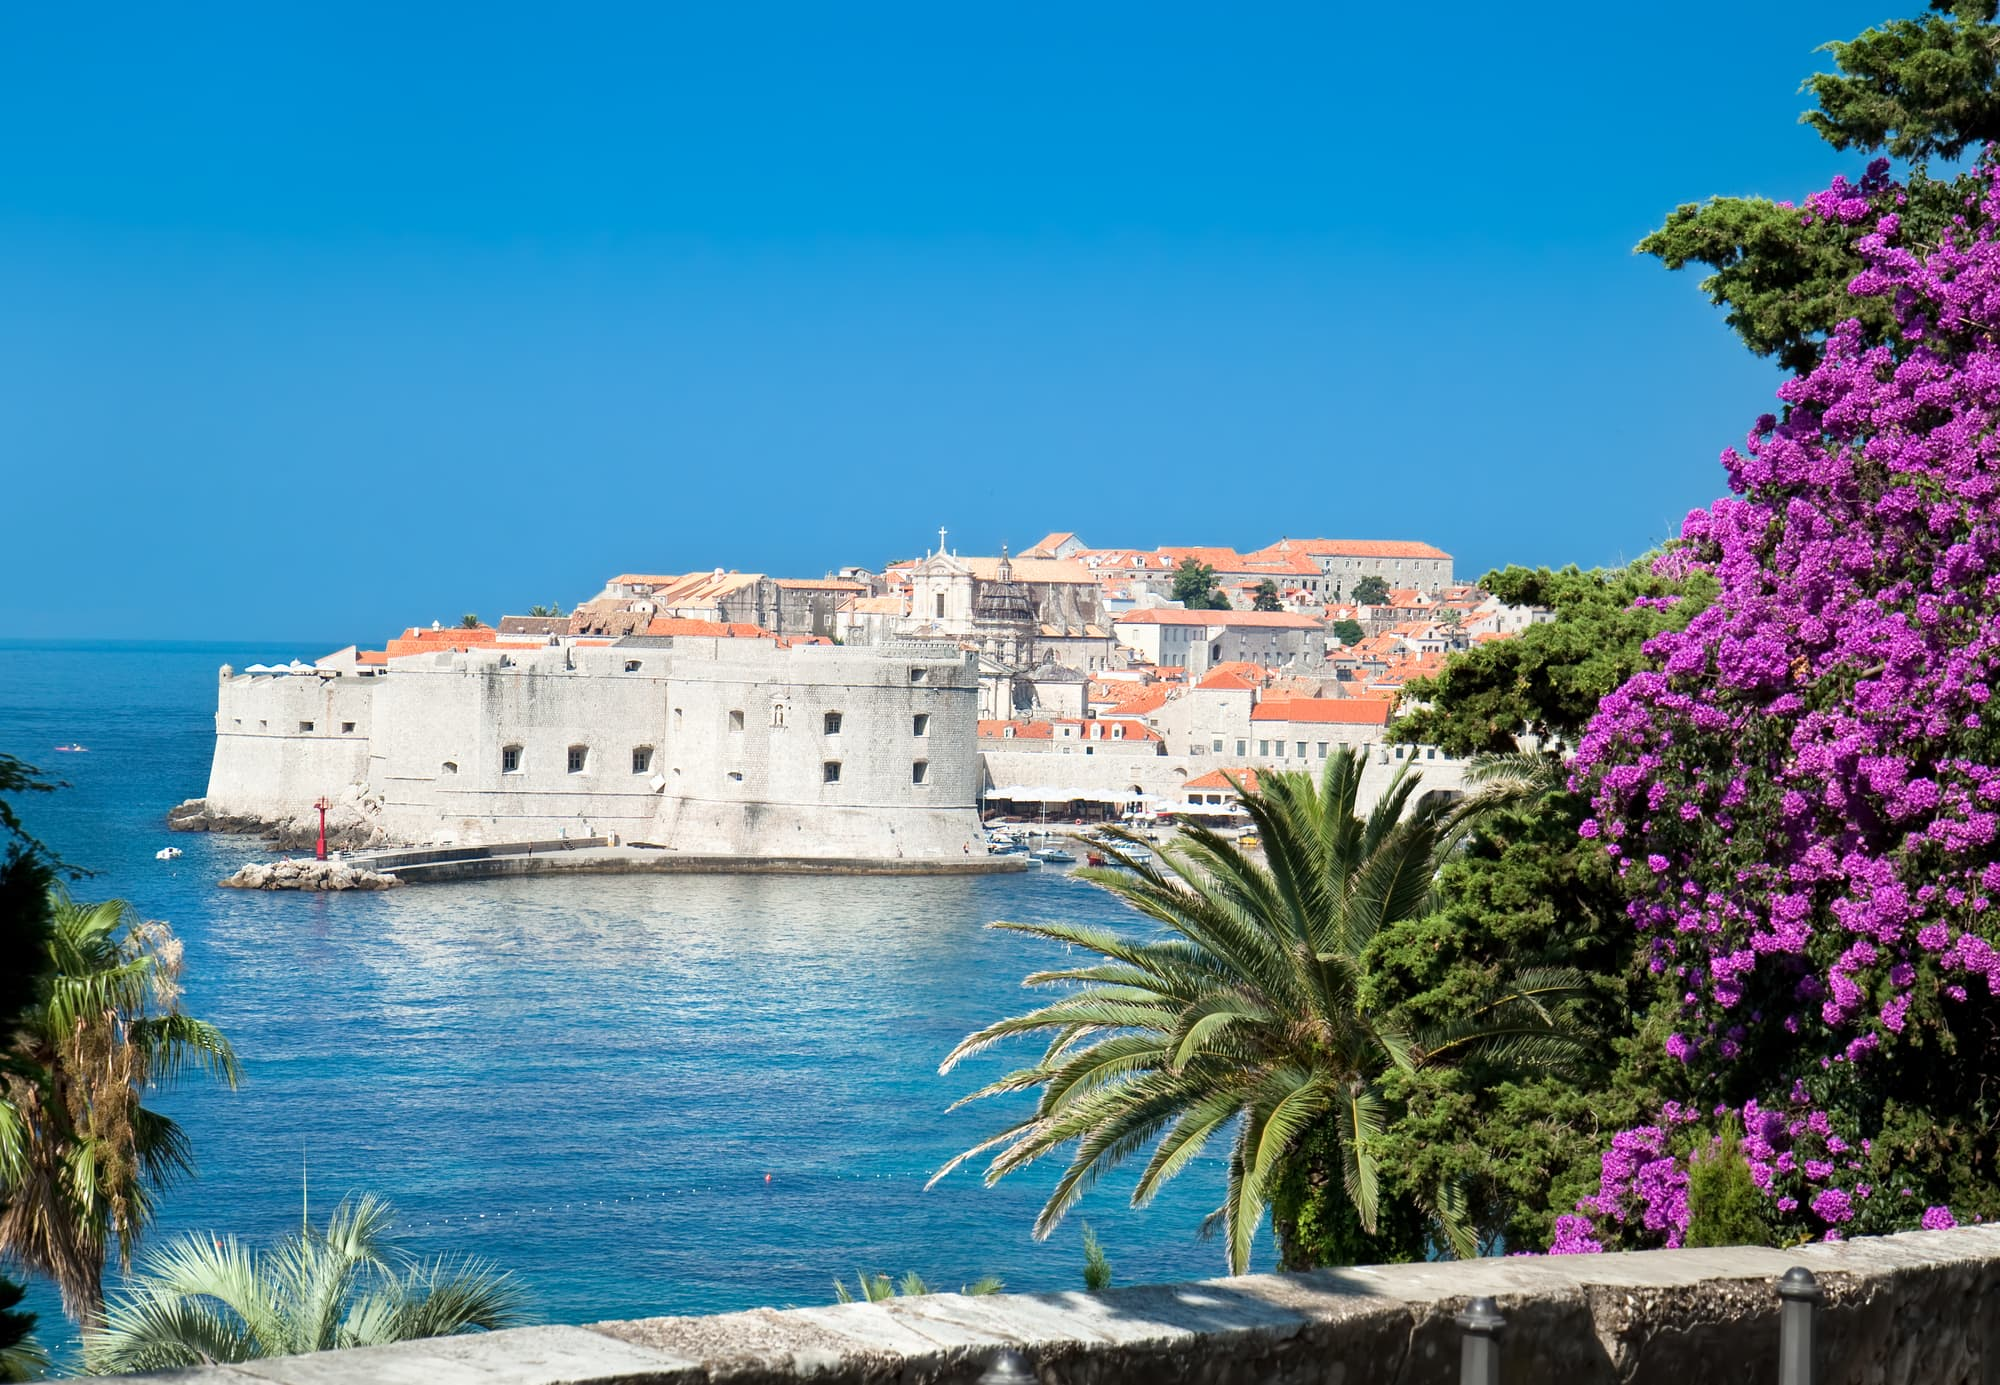 Visiting Croatia for one brilliant week